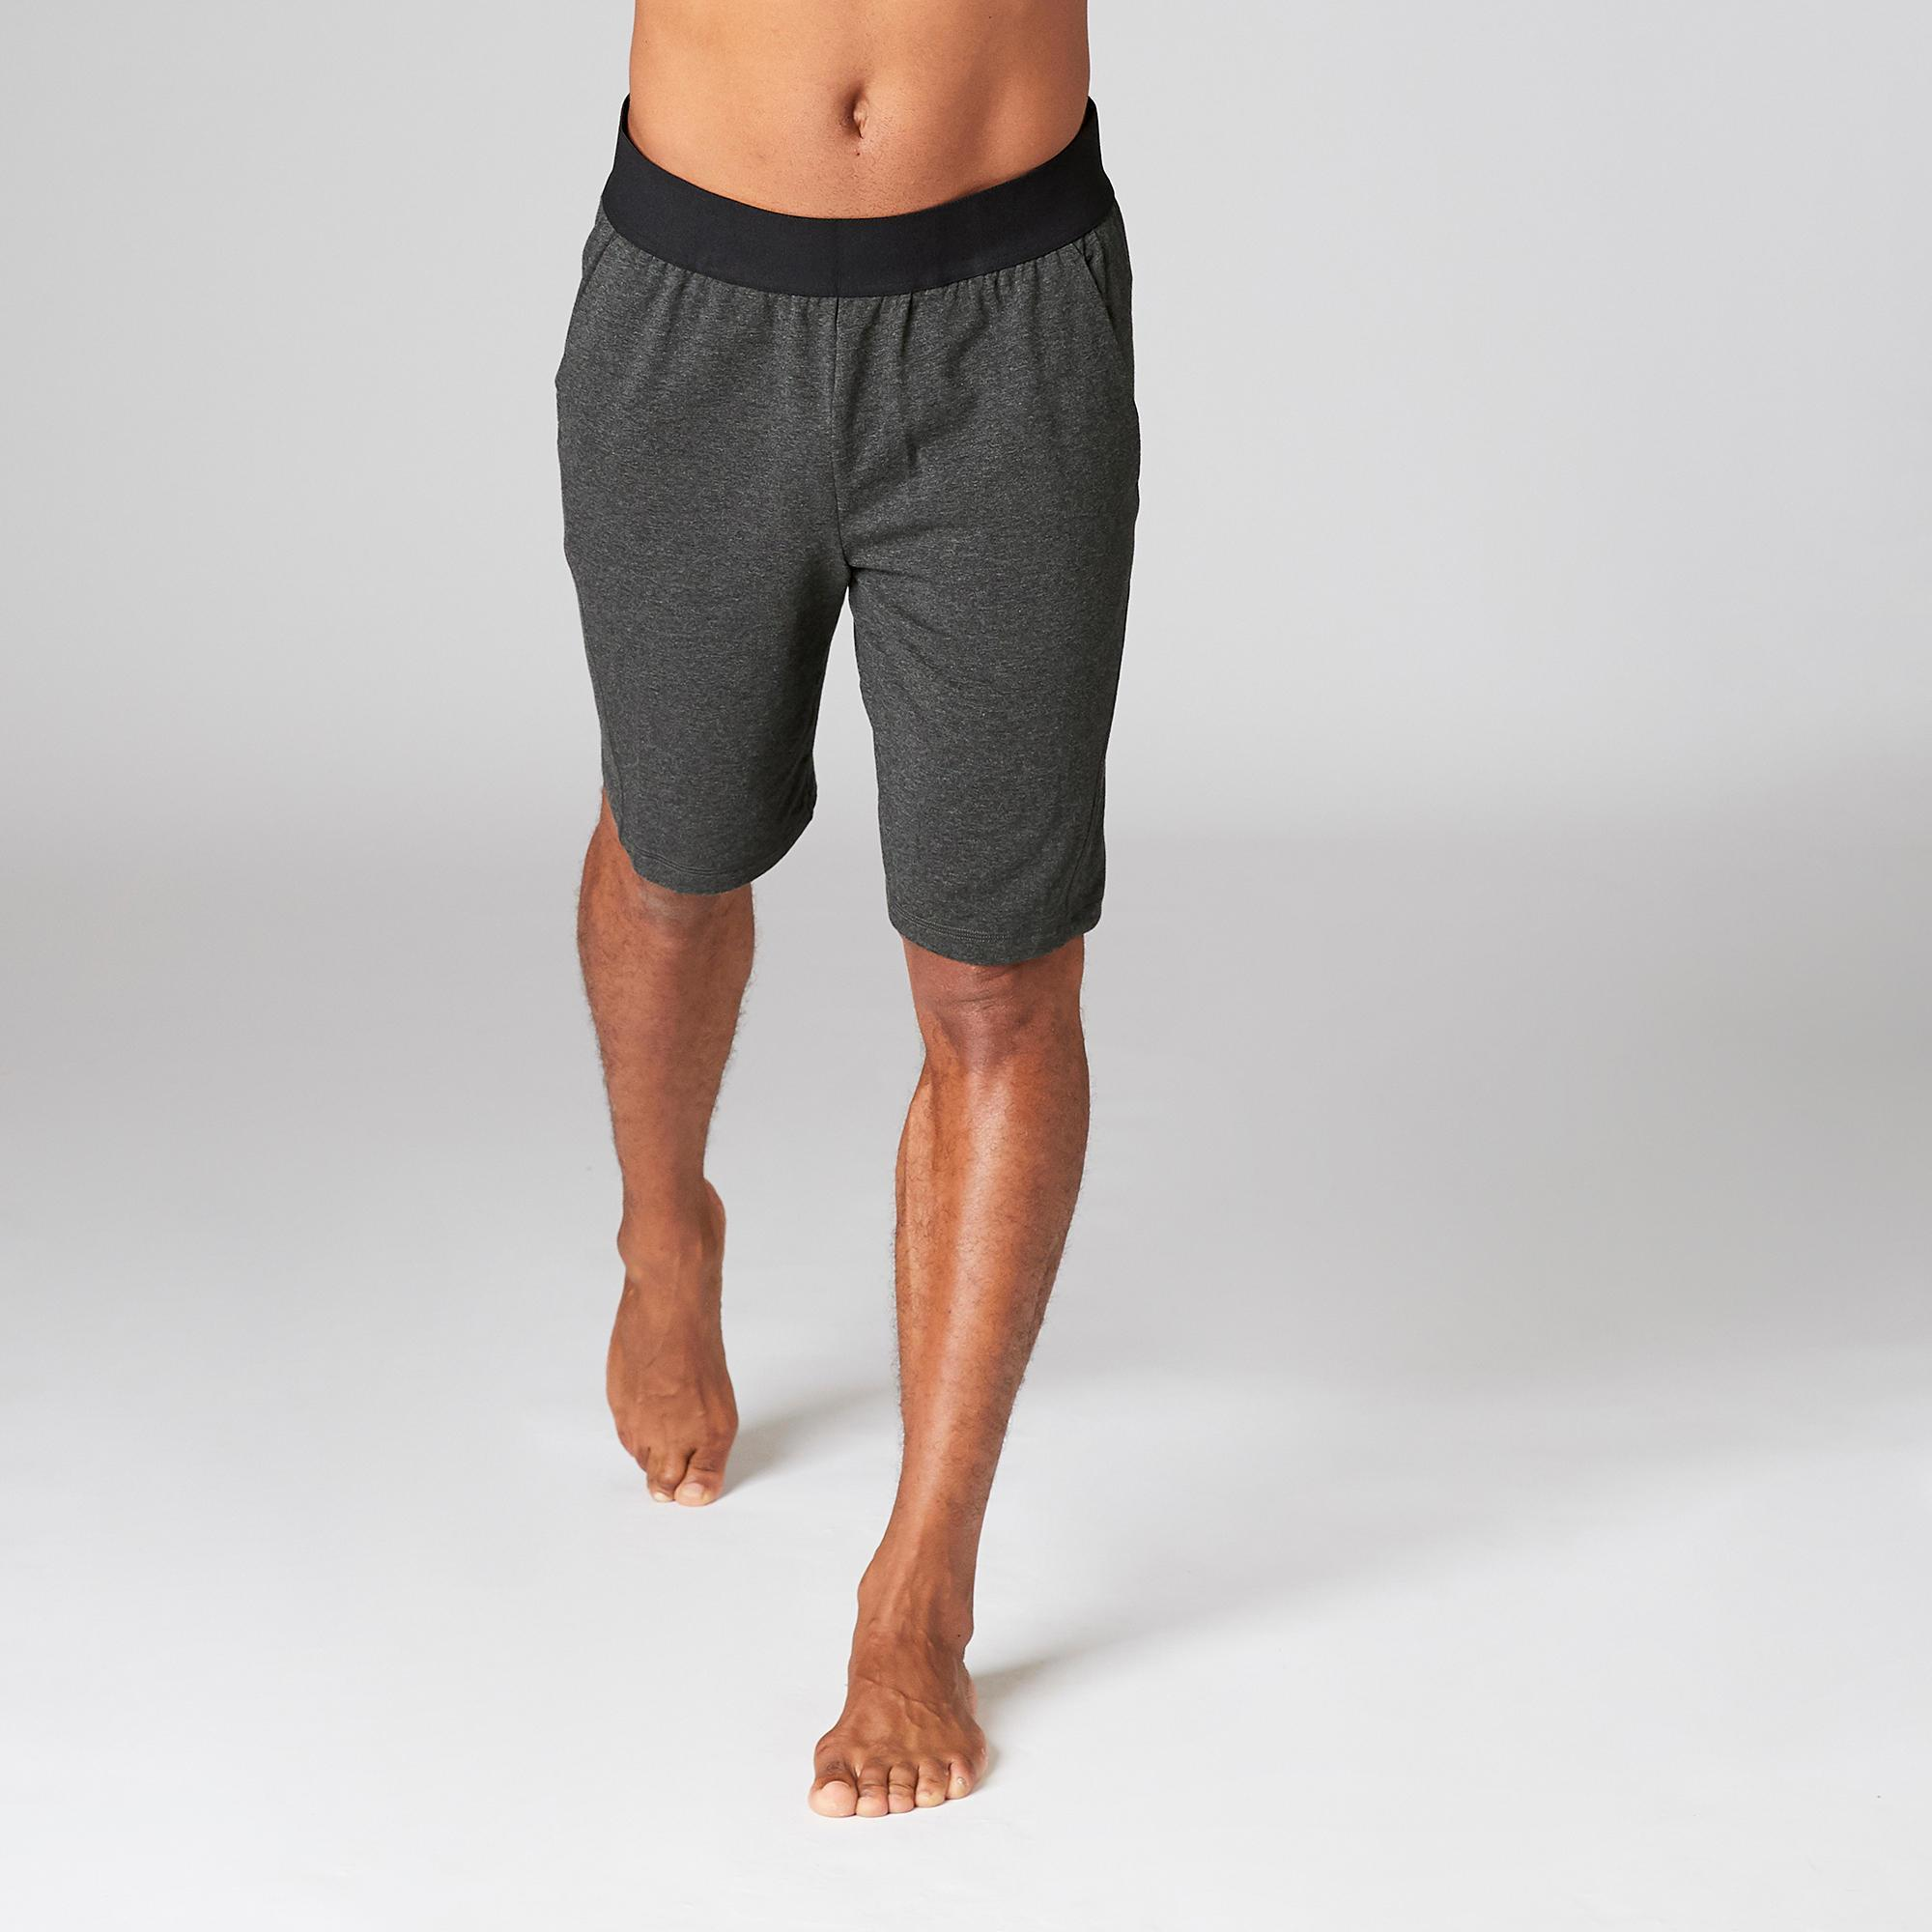 hot new products lowest discount better Organic Cotton Gentle Yoga Shorts - Black | Domyos by Decathlon